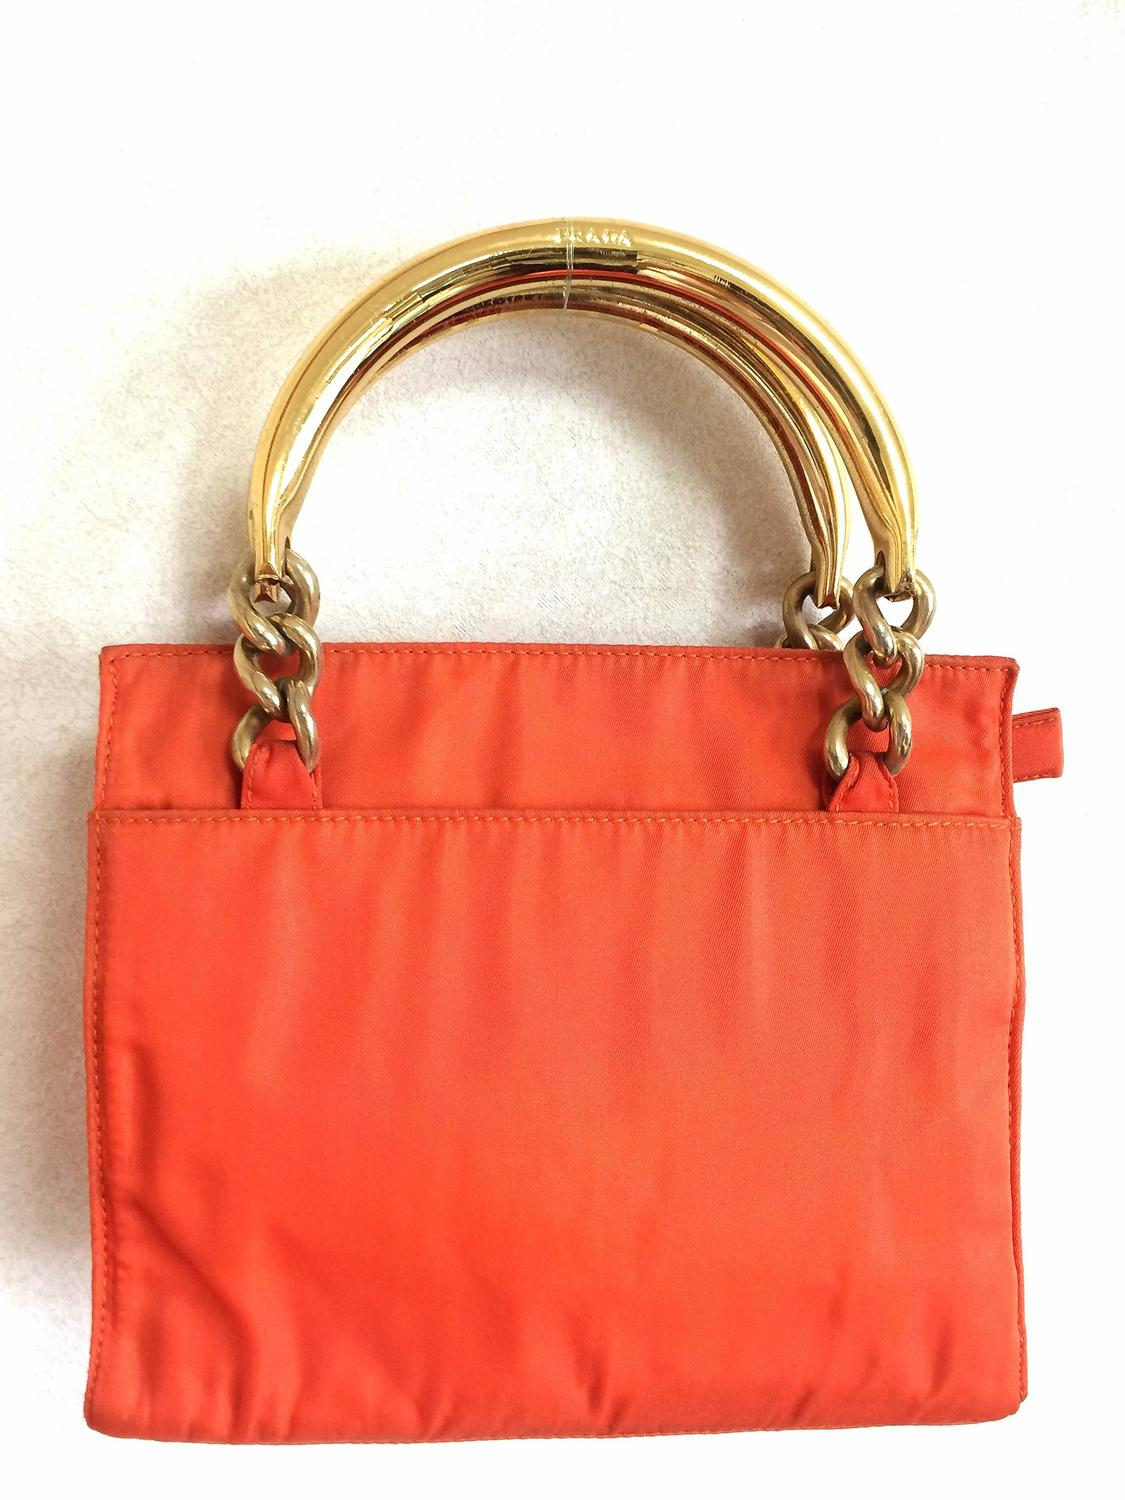 c5dfc951fb2762 Prada Golden Handle Nylon Tote Bags Pictures | Stanford Center for ...